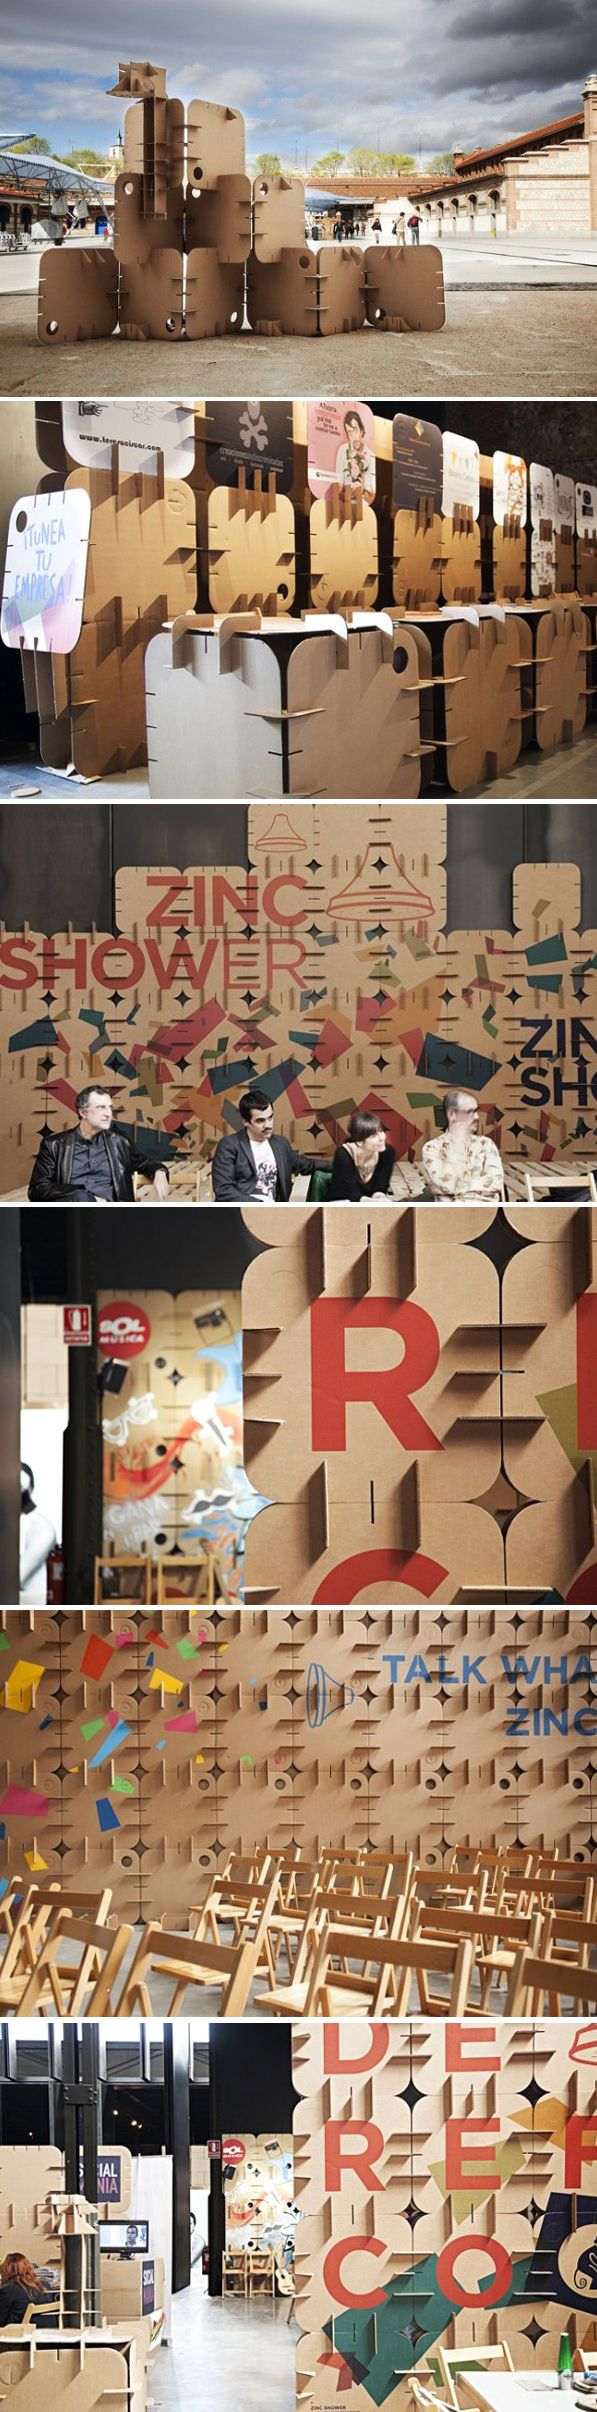 Display pannels exhibition modular cardboard | Zincshower event at Matadero Madrid by Cartonlab, SOPA y Cuartoymitad architects more info:http://cartonlab.com/proyecto/cartonlab-en-zincshower-2014/